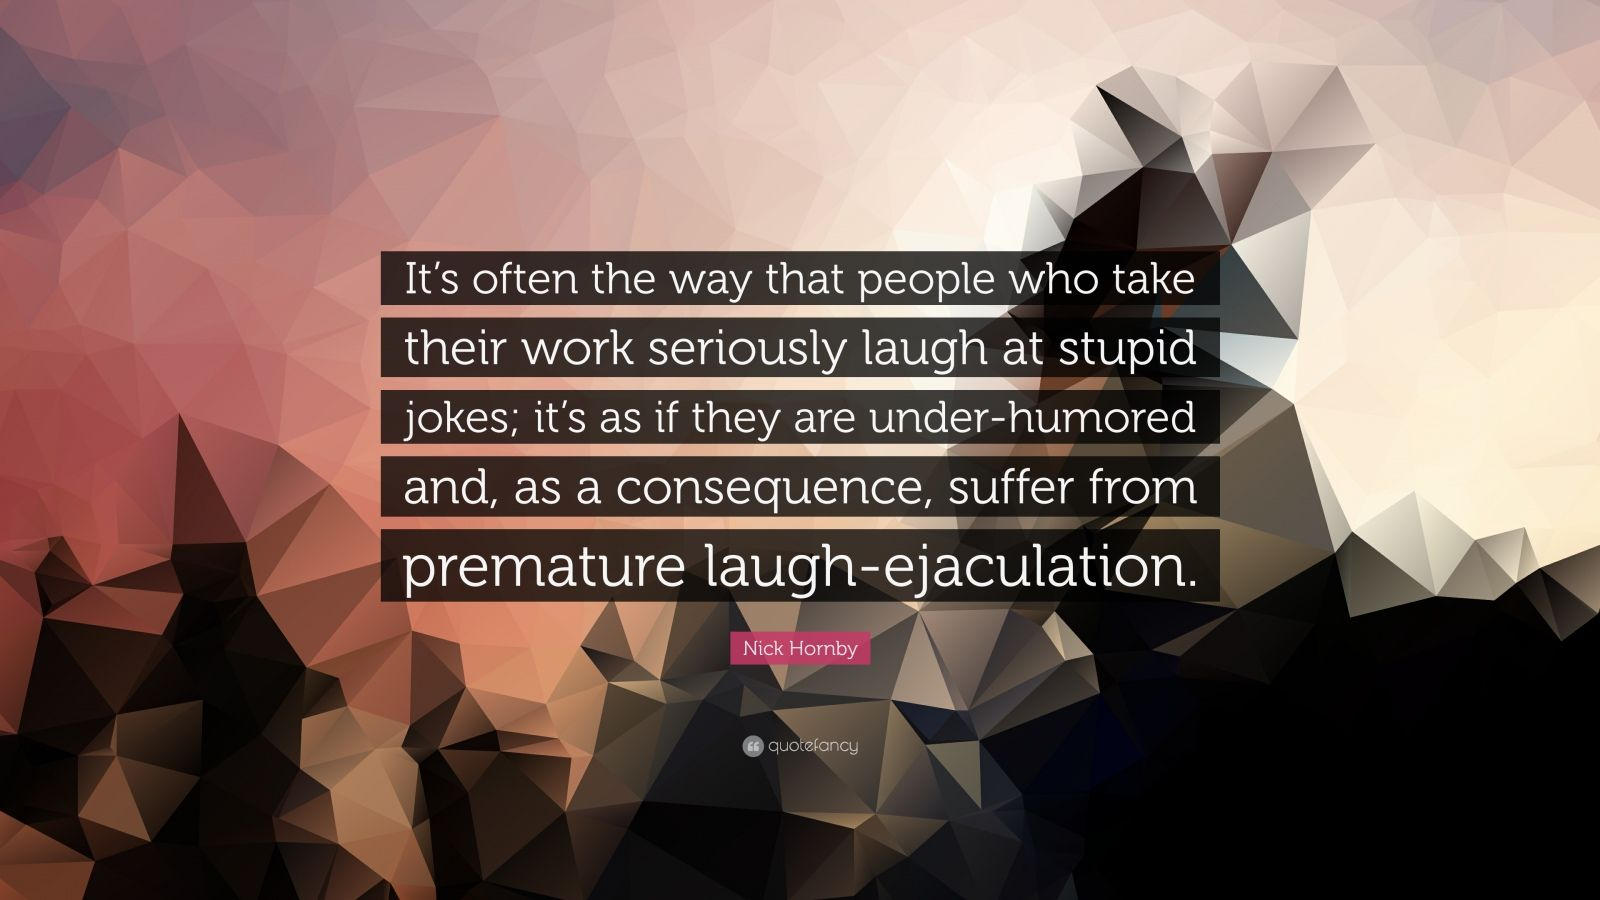 """Nick Hornby Quote: """"It's often the way that people who take their work seriously laugh at stupid jokes; it's as if they are under-humored and, as a consequence, suffer from premature laugh-ejaculation."""""""